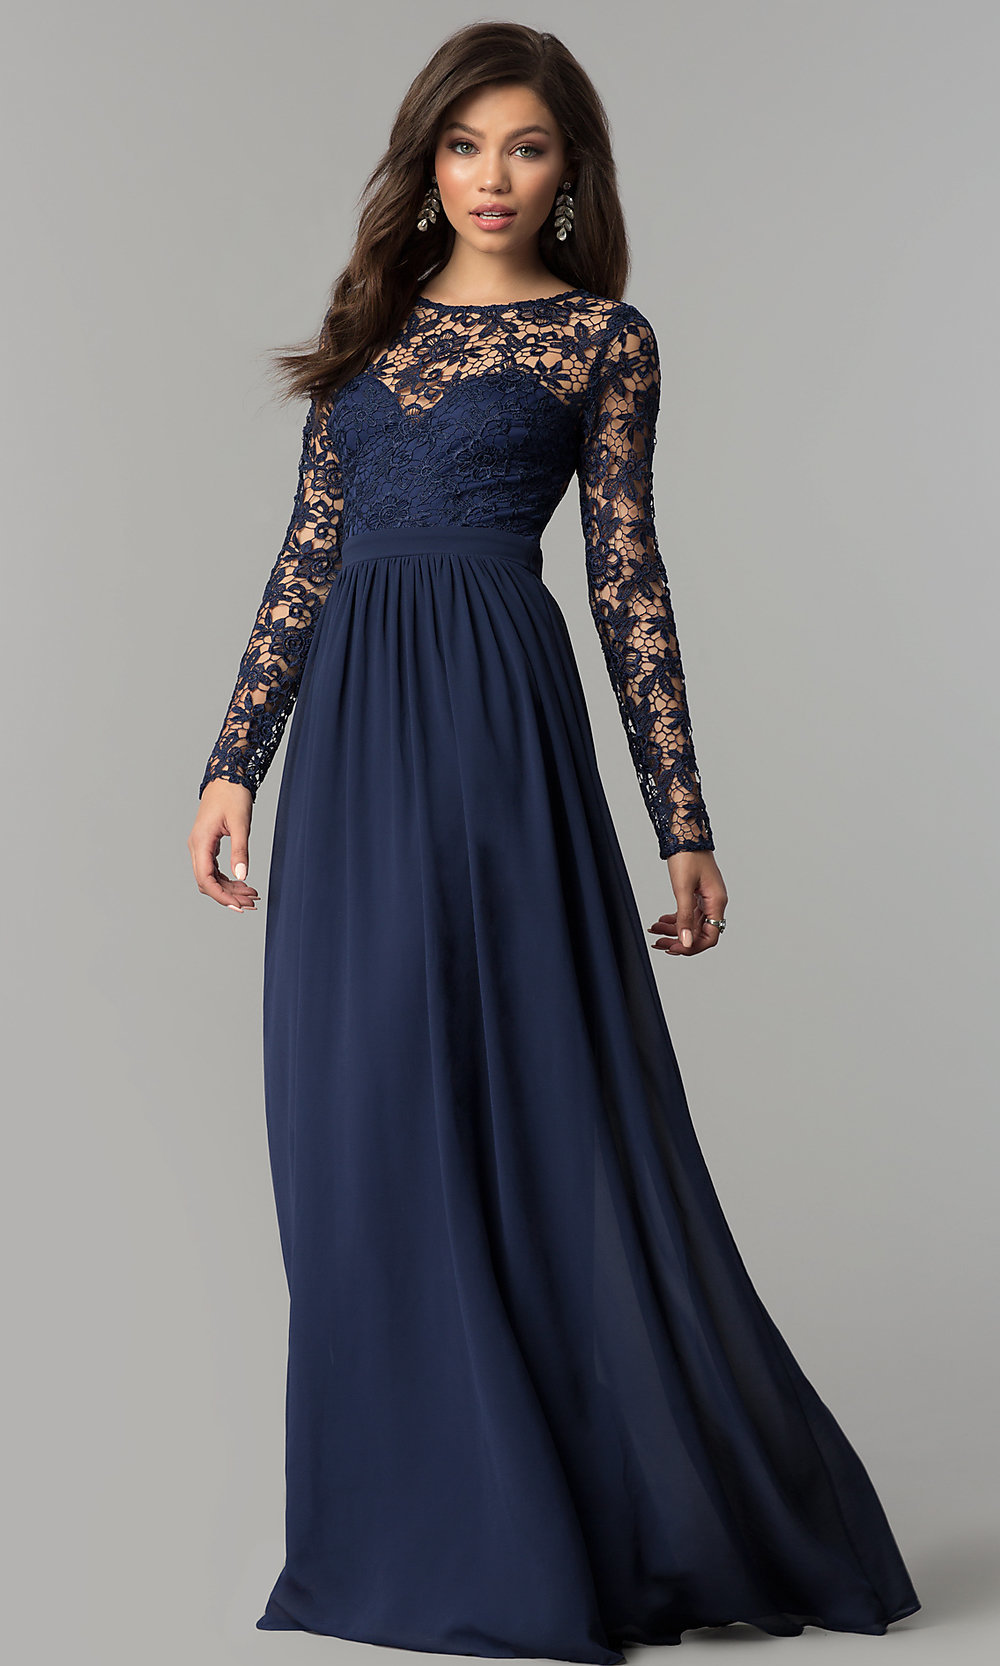 Chiffon and Lace Long-Sleeve Prom Dress- PromGirl